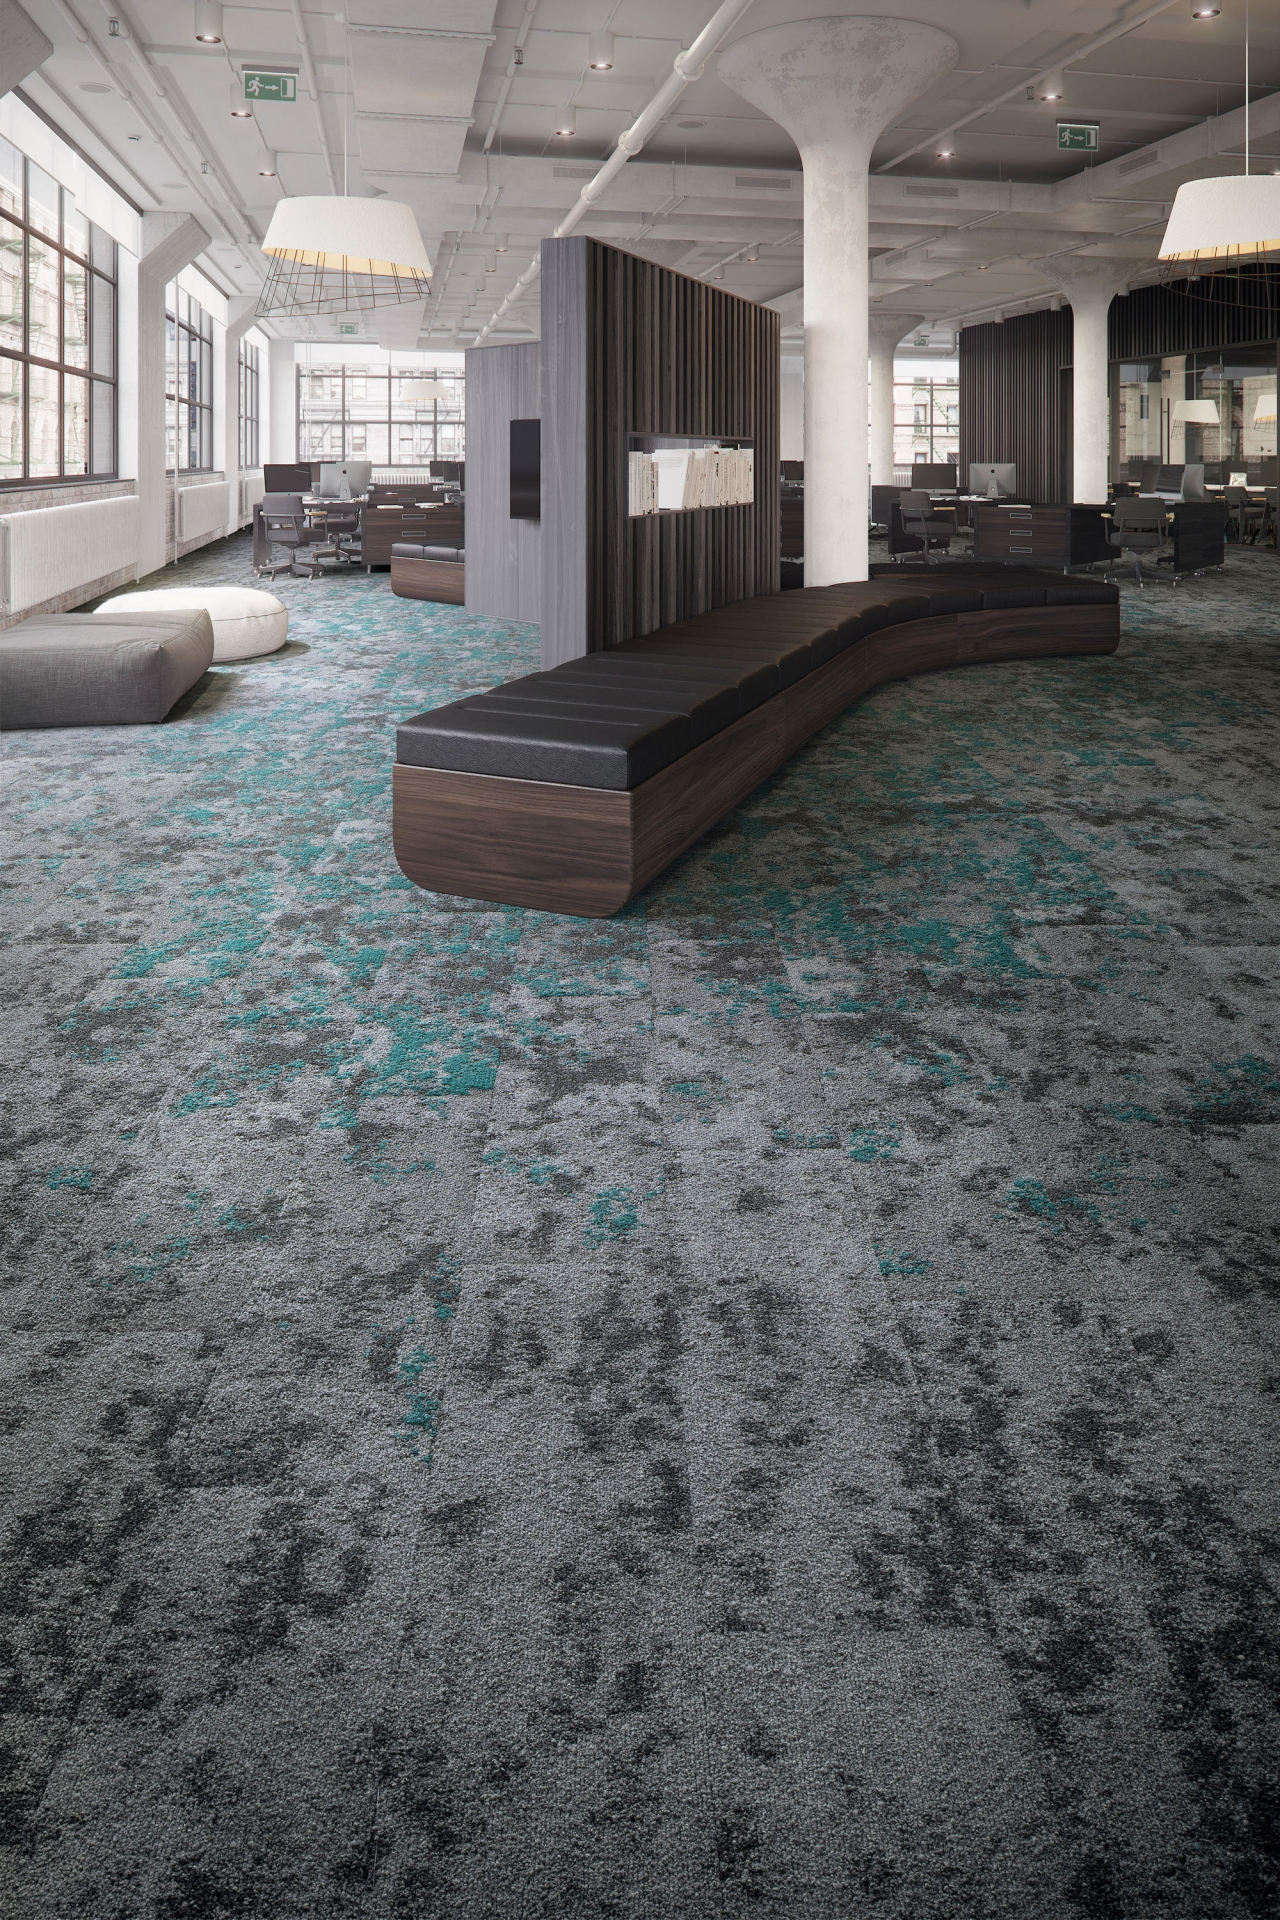 Mohawk Groups Lichen Wins Interior Design Best Of Year Award For Modular Carpet